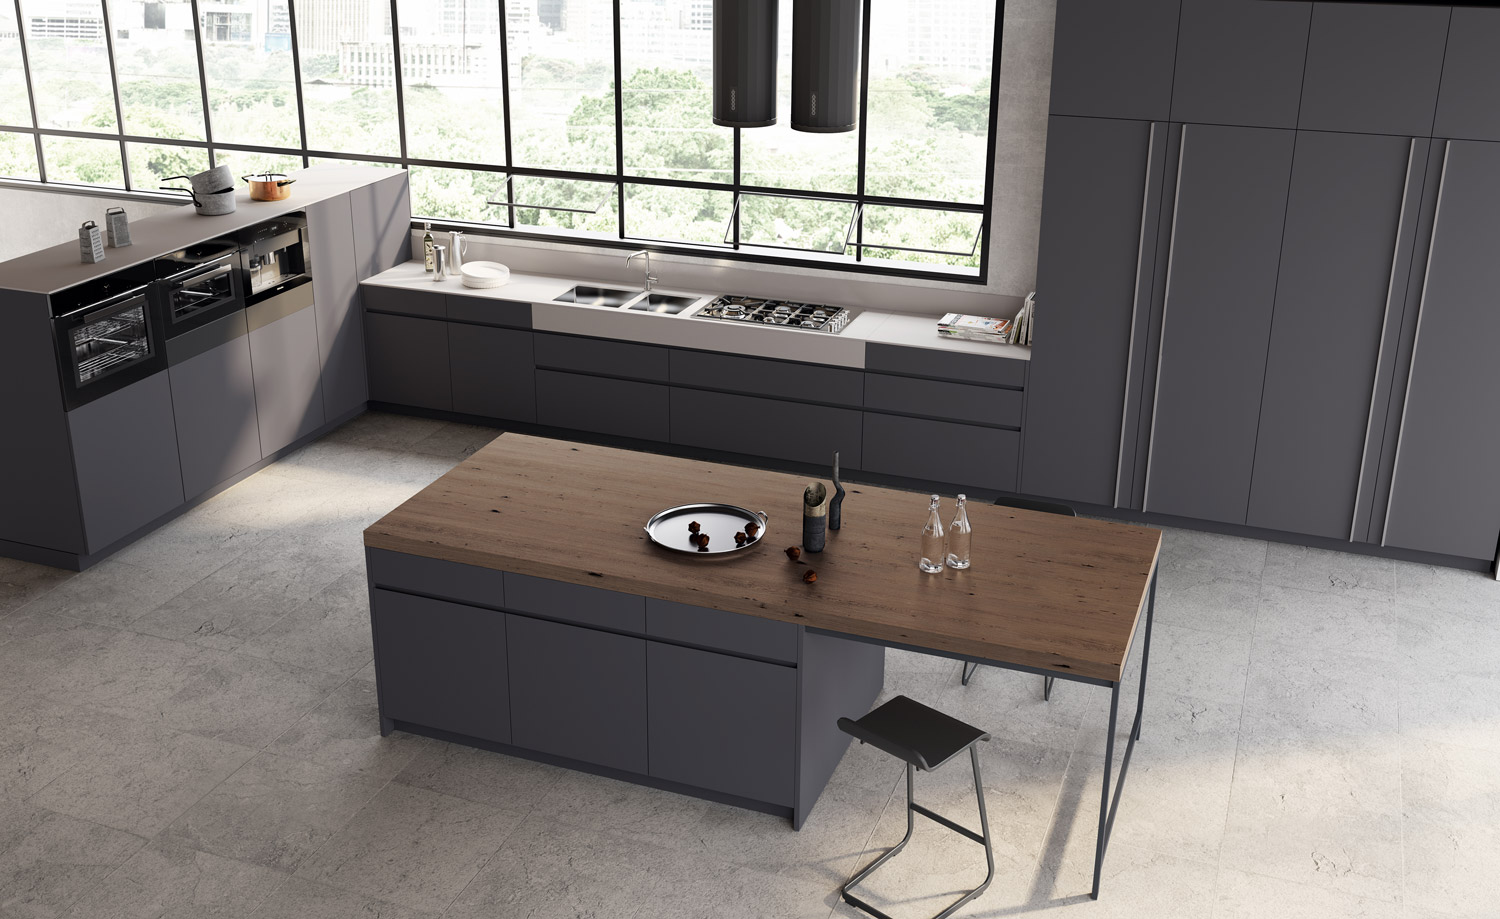 BK System offers a vast variety of technical and stylistic solutions in a modern kitchen space. Innovative materials and design are always on top of a more demanding clientele and in line with the latest trends in the modern kitchen design.